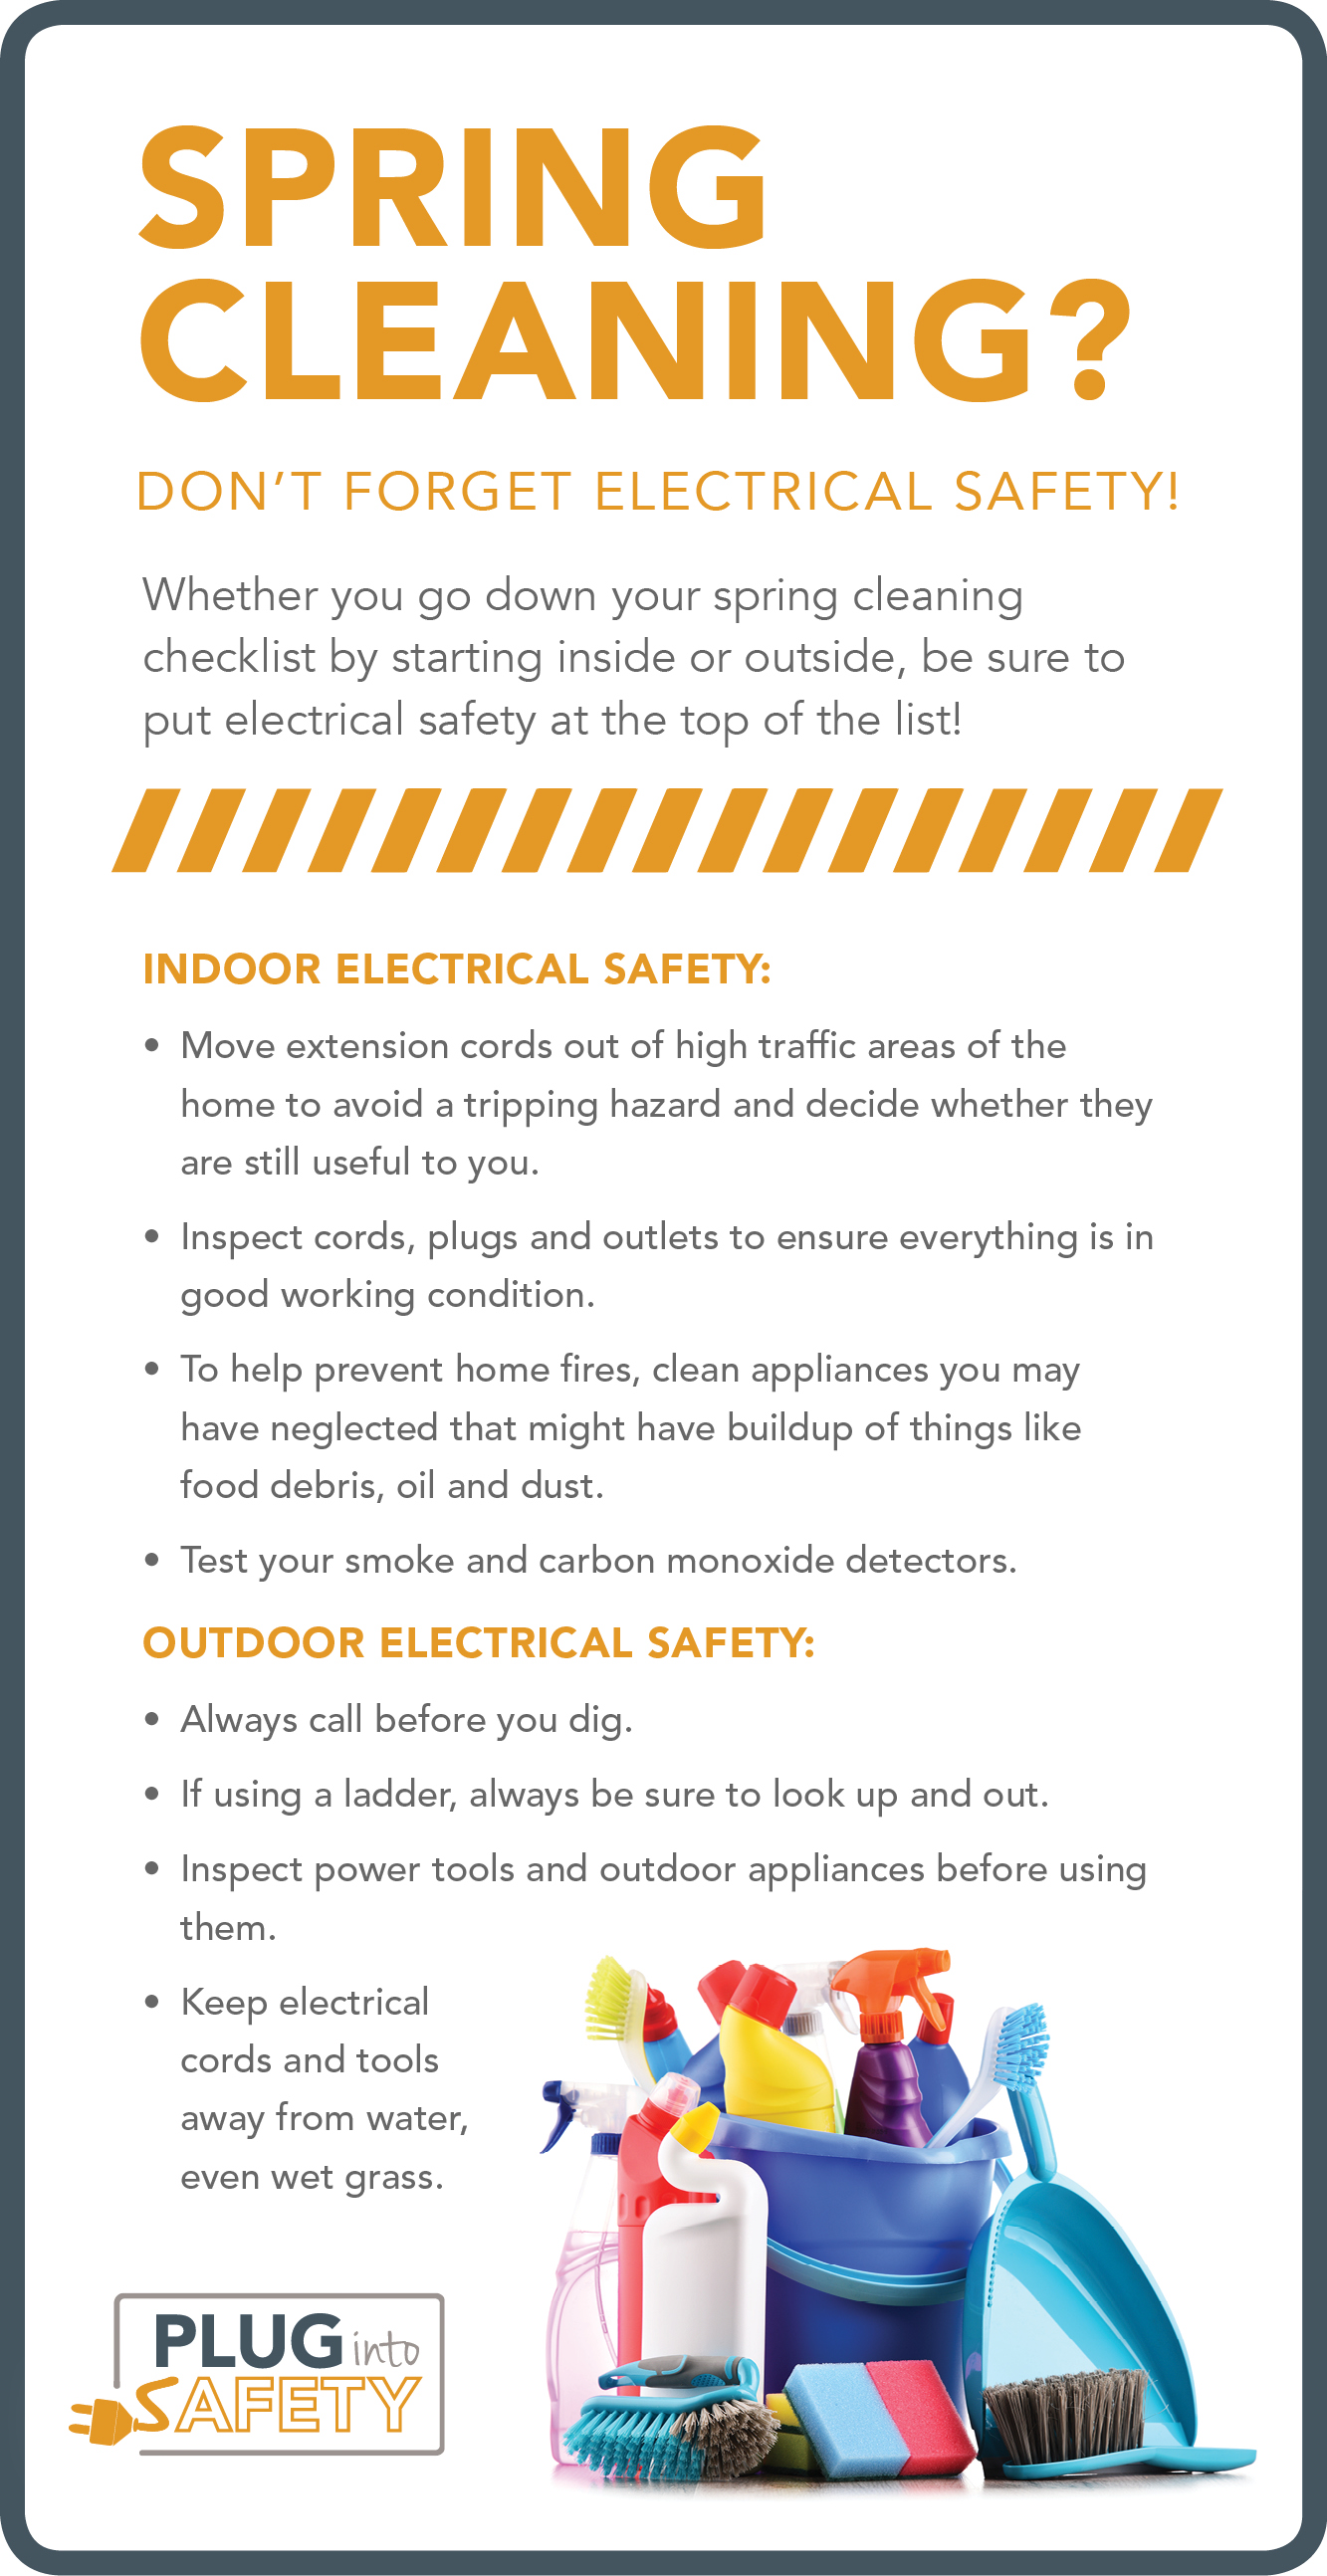 Spring cleaning safety infographic